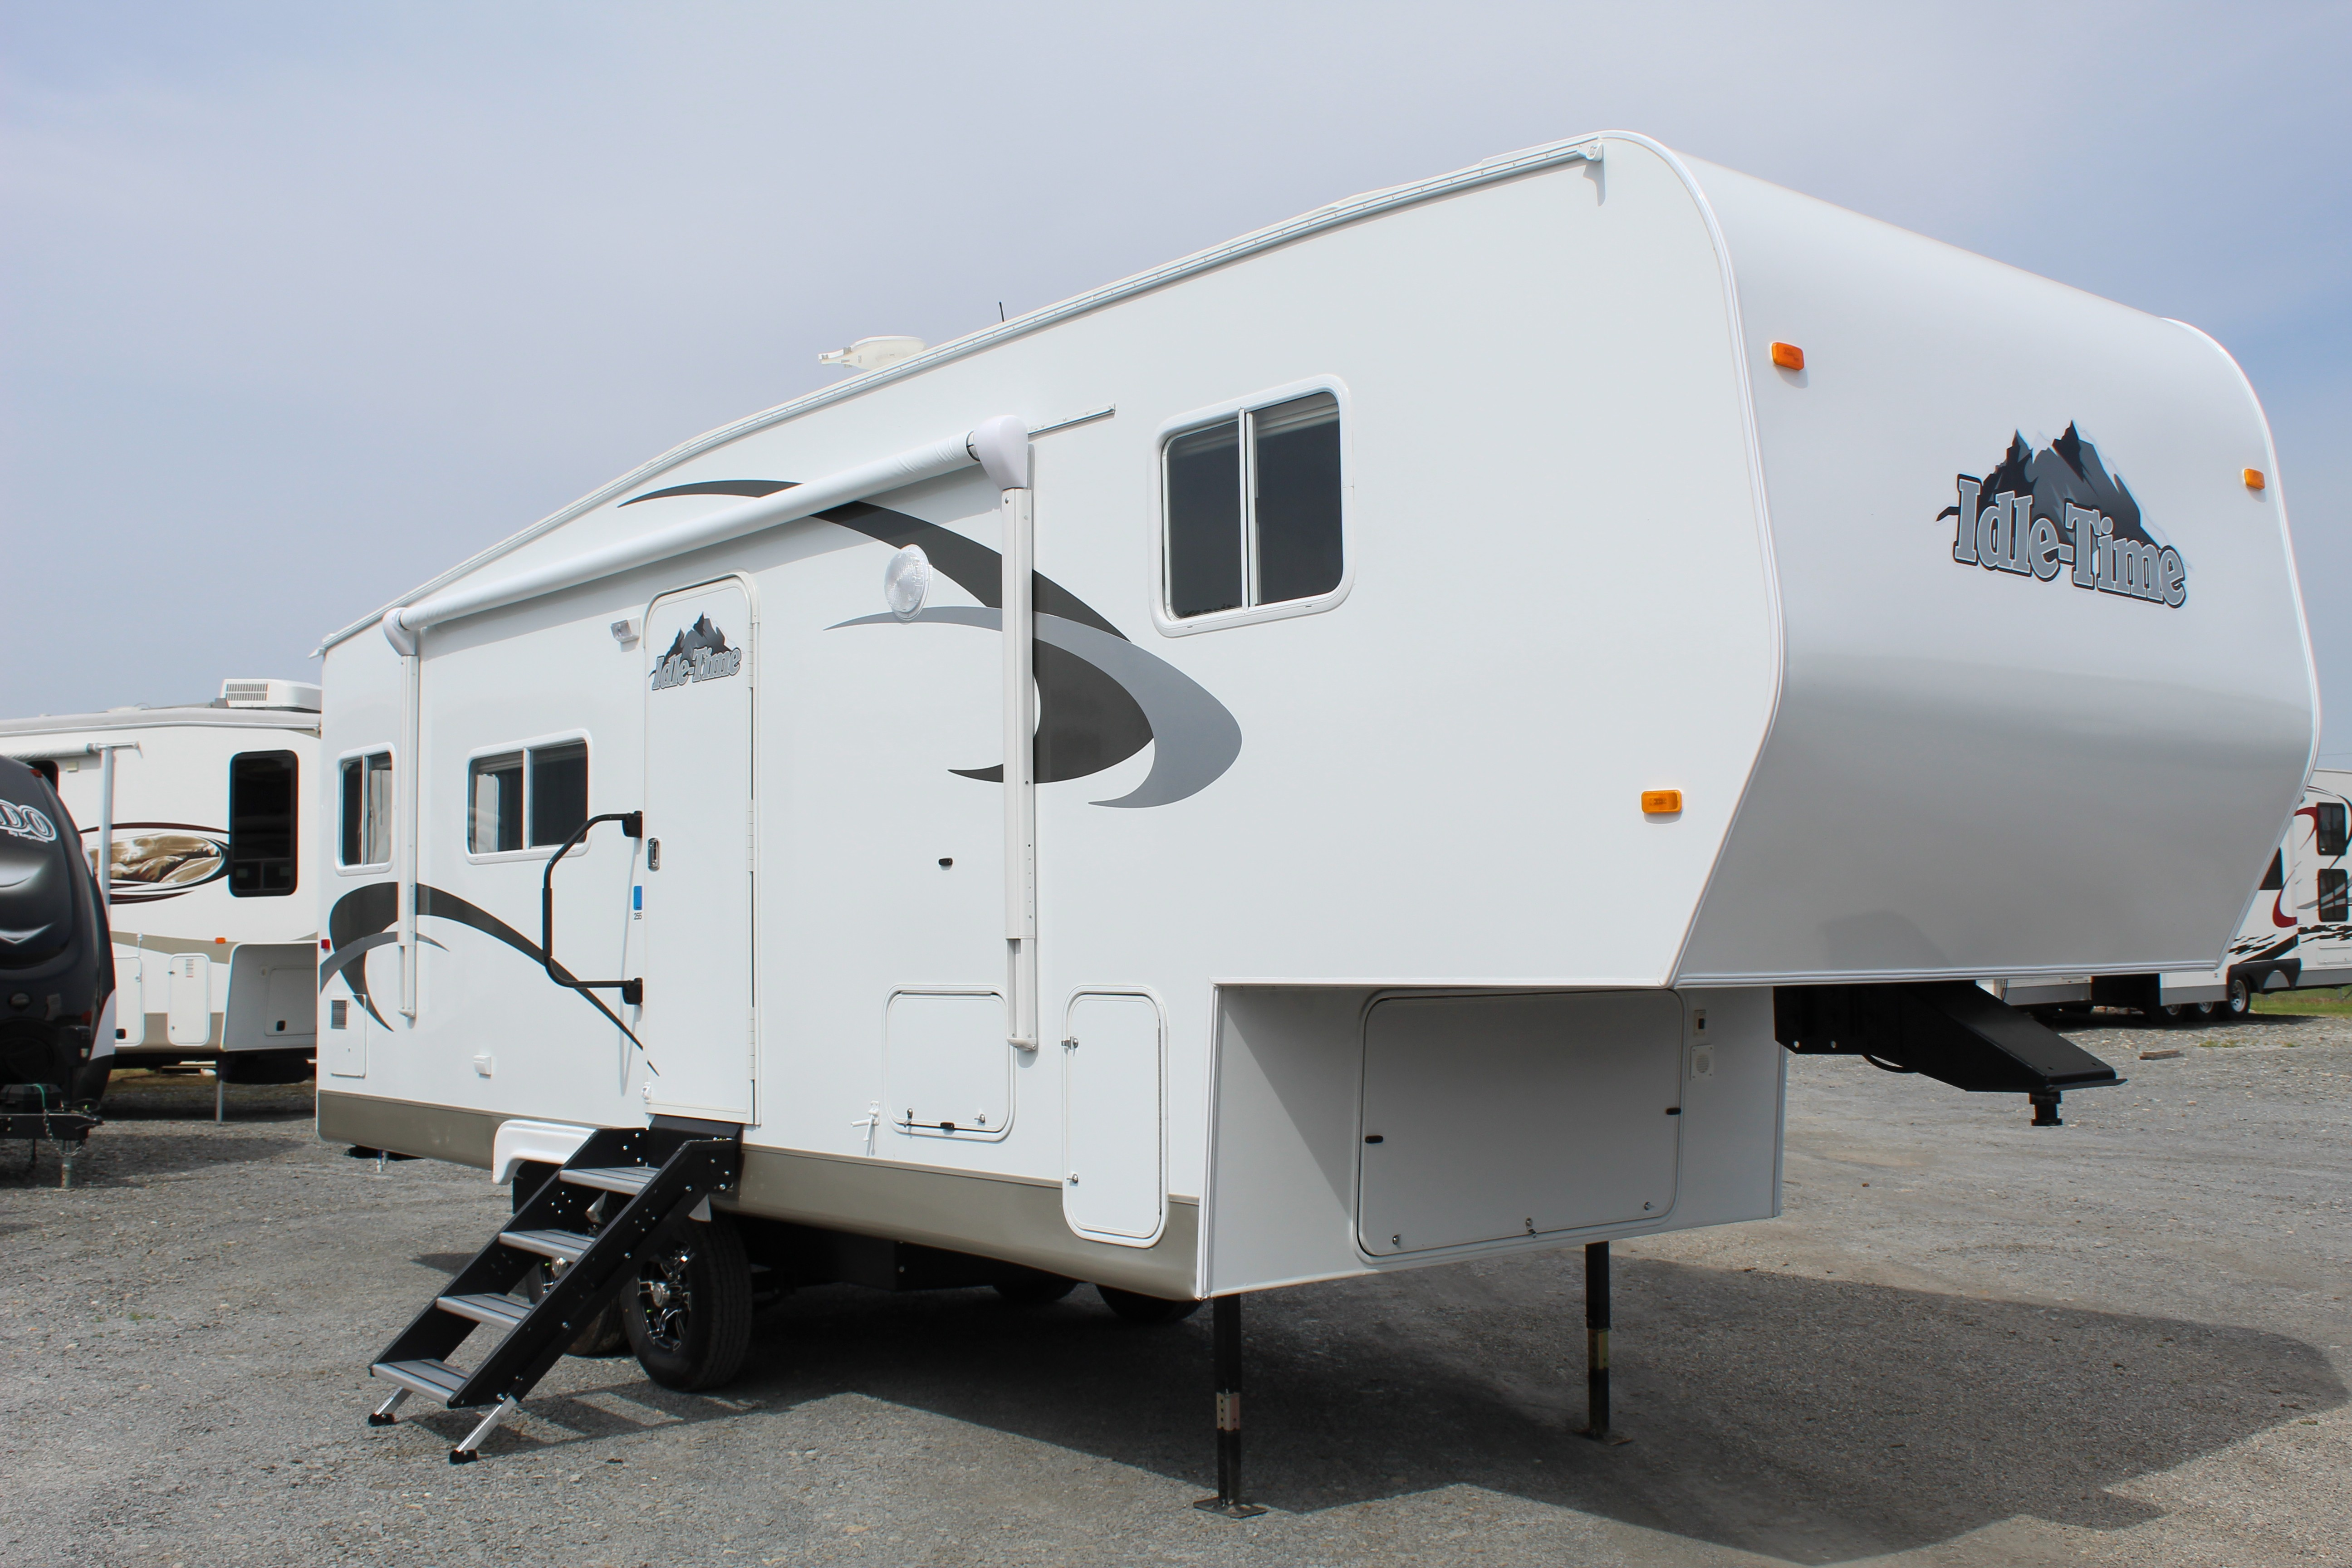 New, 2021, Idle-Time, 255RKS, Fifth Wheels